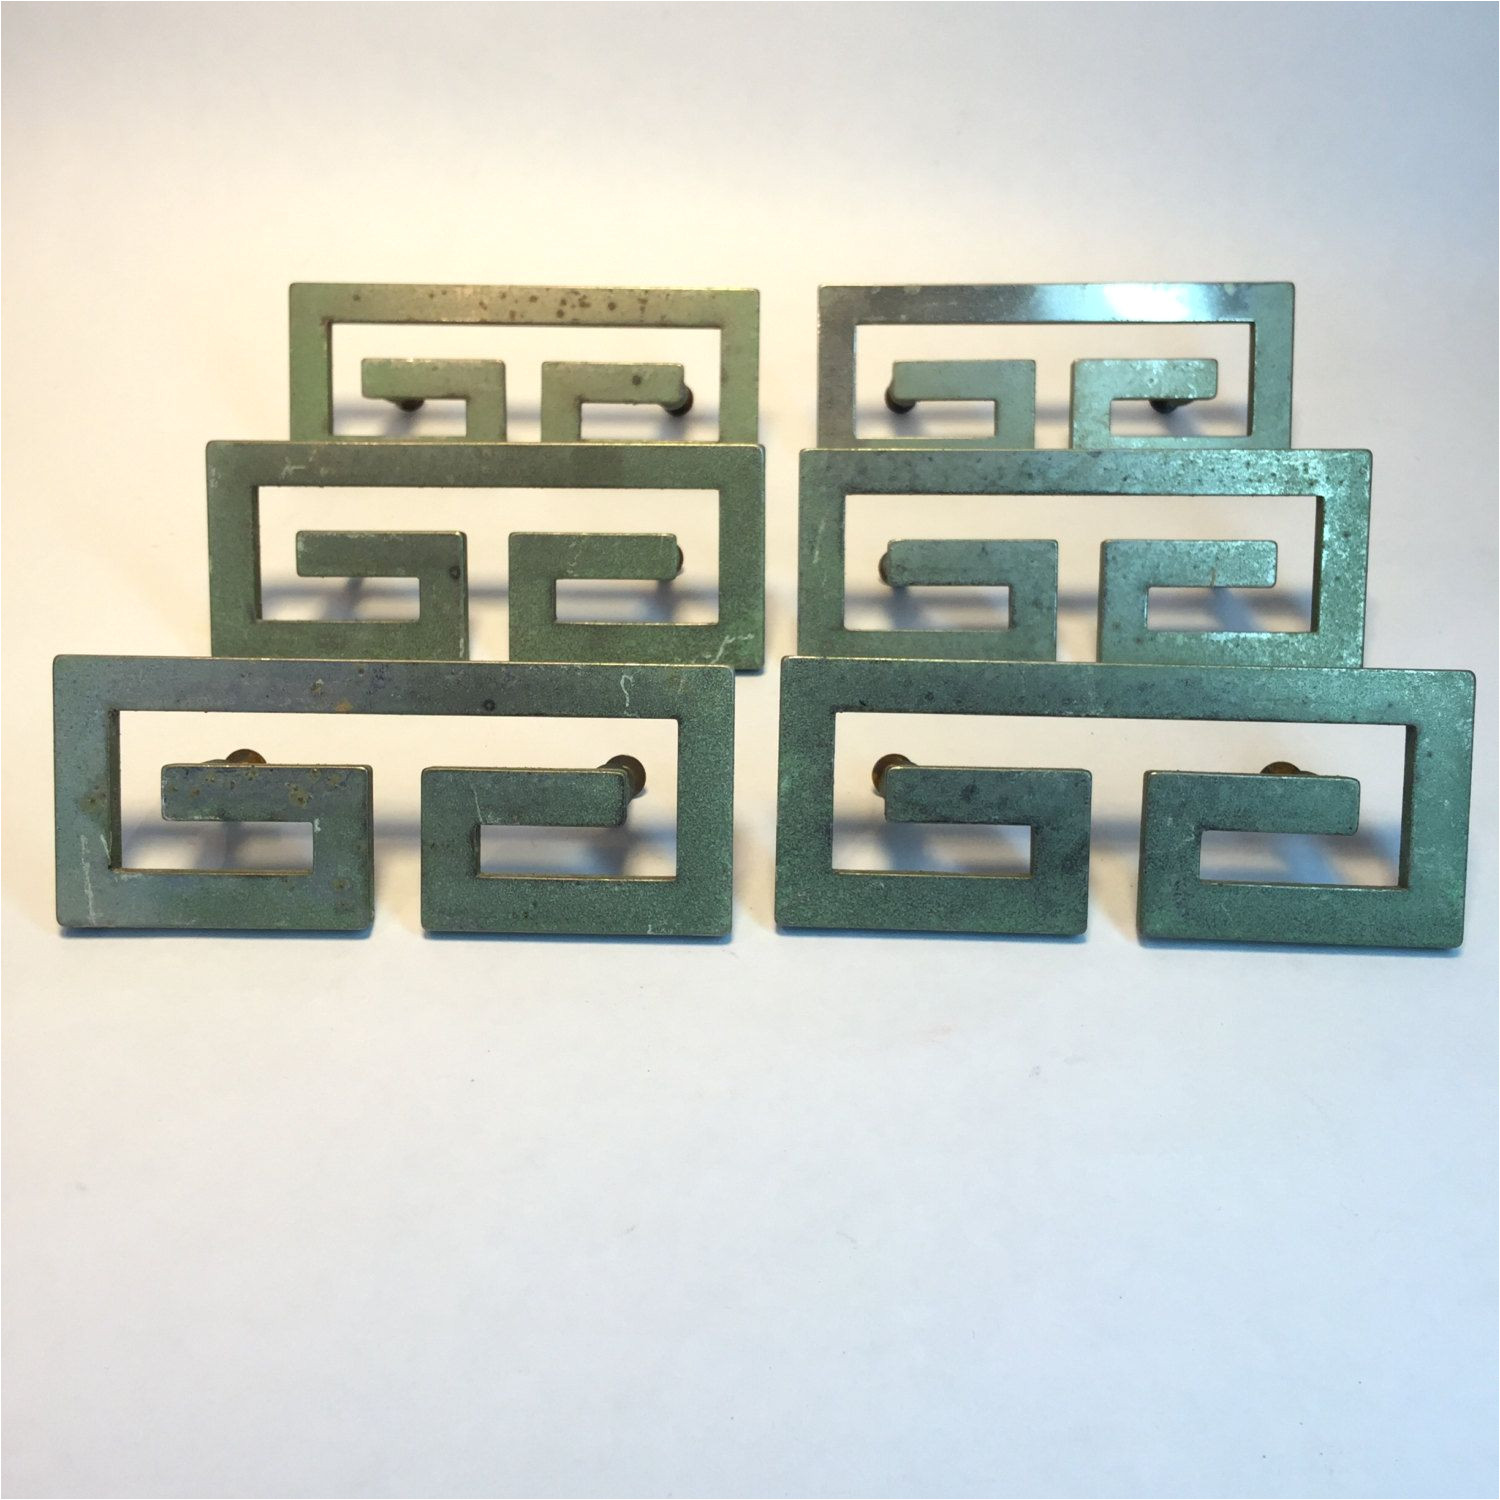 greek key style drawer pulls lot of 6 vintage 3 inch centers replacement drawer cabinet hardware by retroresalesandiego on etsy